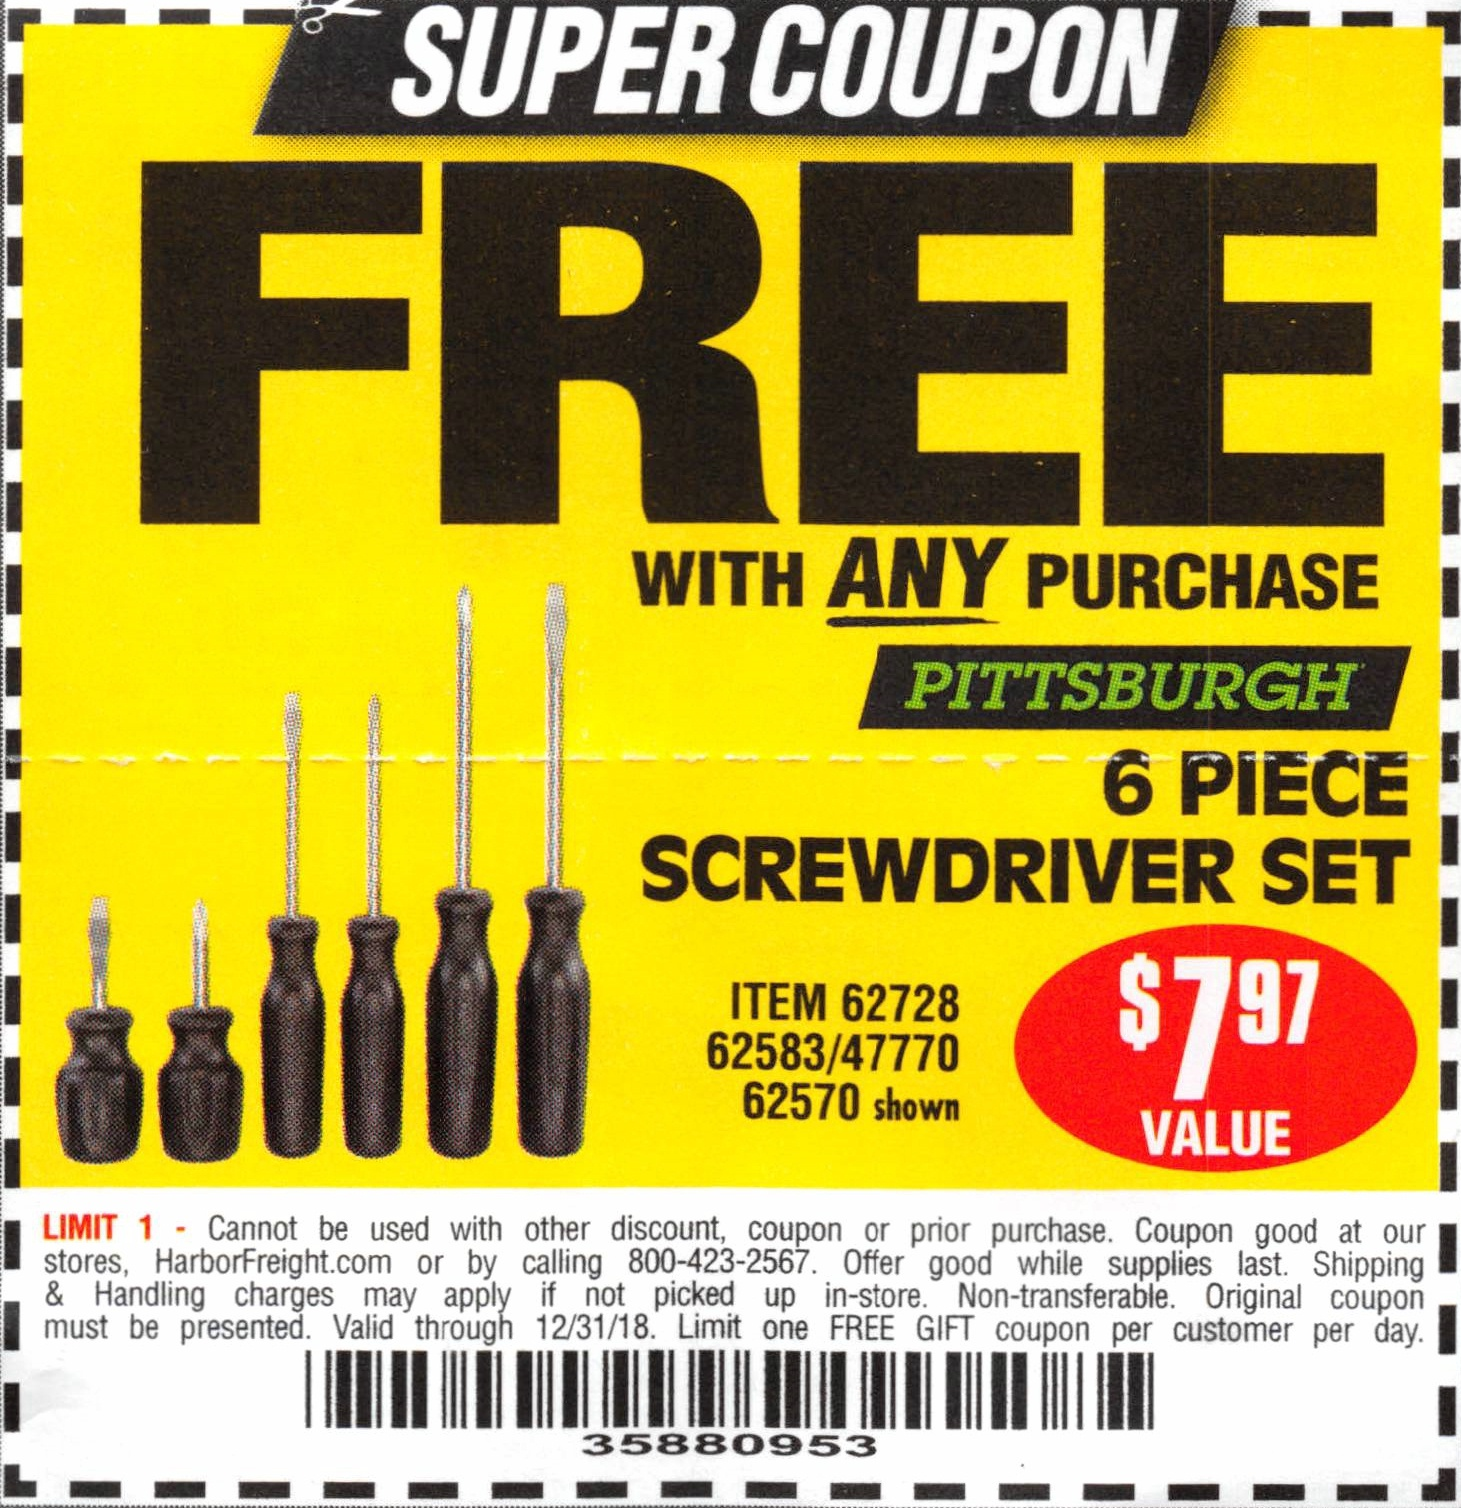 There are 12 Harbor Freight Tools discount codes for you to consider including 1 coupon code, and 11 sales. Most popular now: Save up to 70% off Sale & Clearance. Latest offer: Sign up for Harbor Freight Tools Emails and Receive Exclusive Offers and Latest News%(2K).